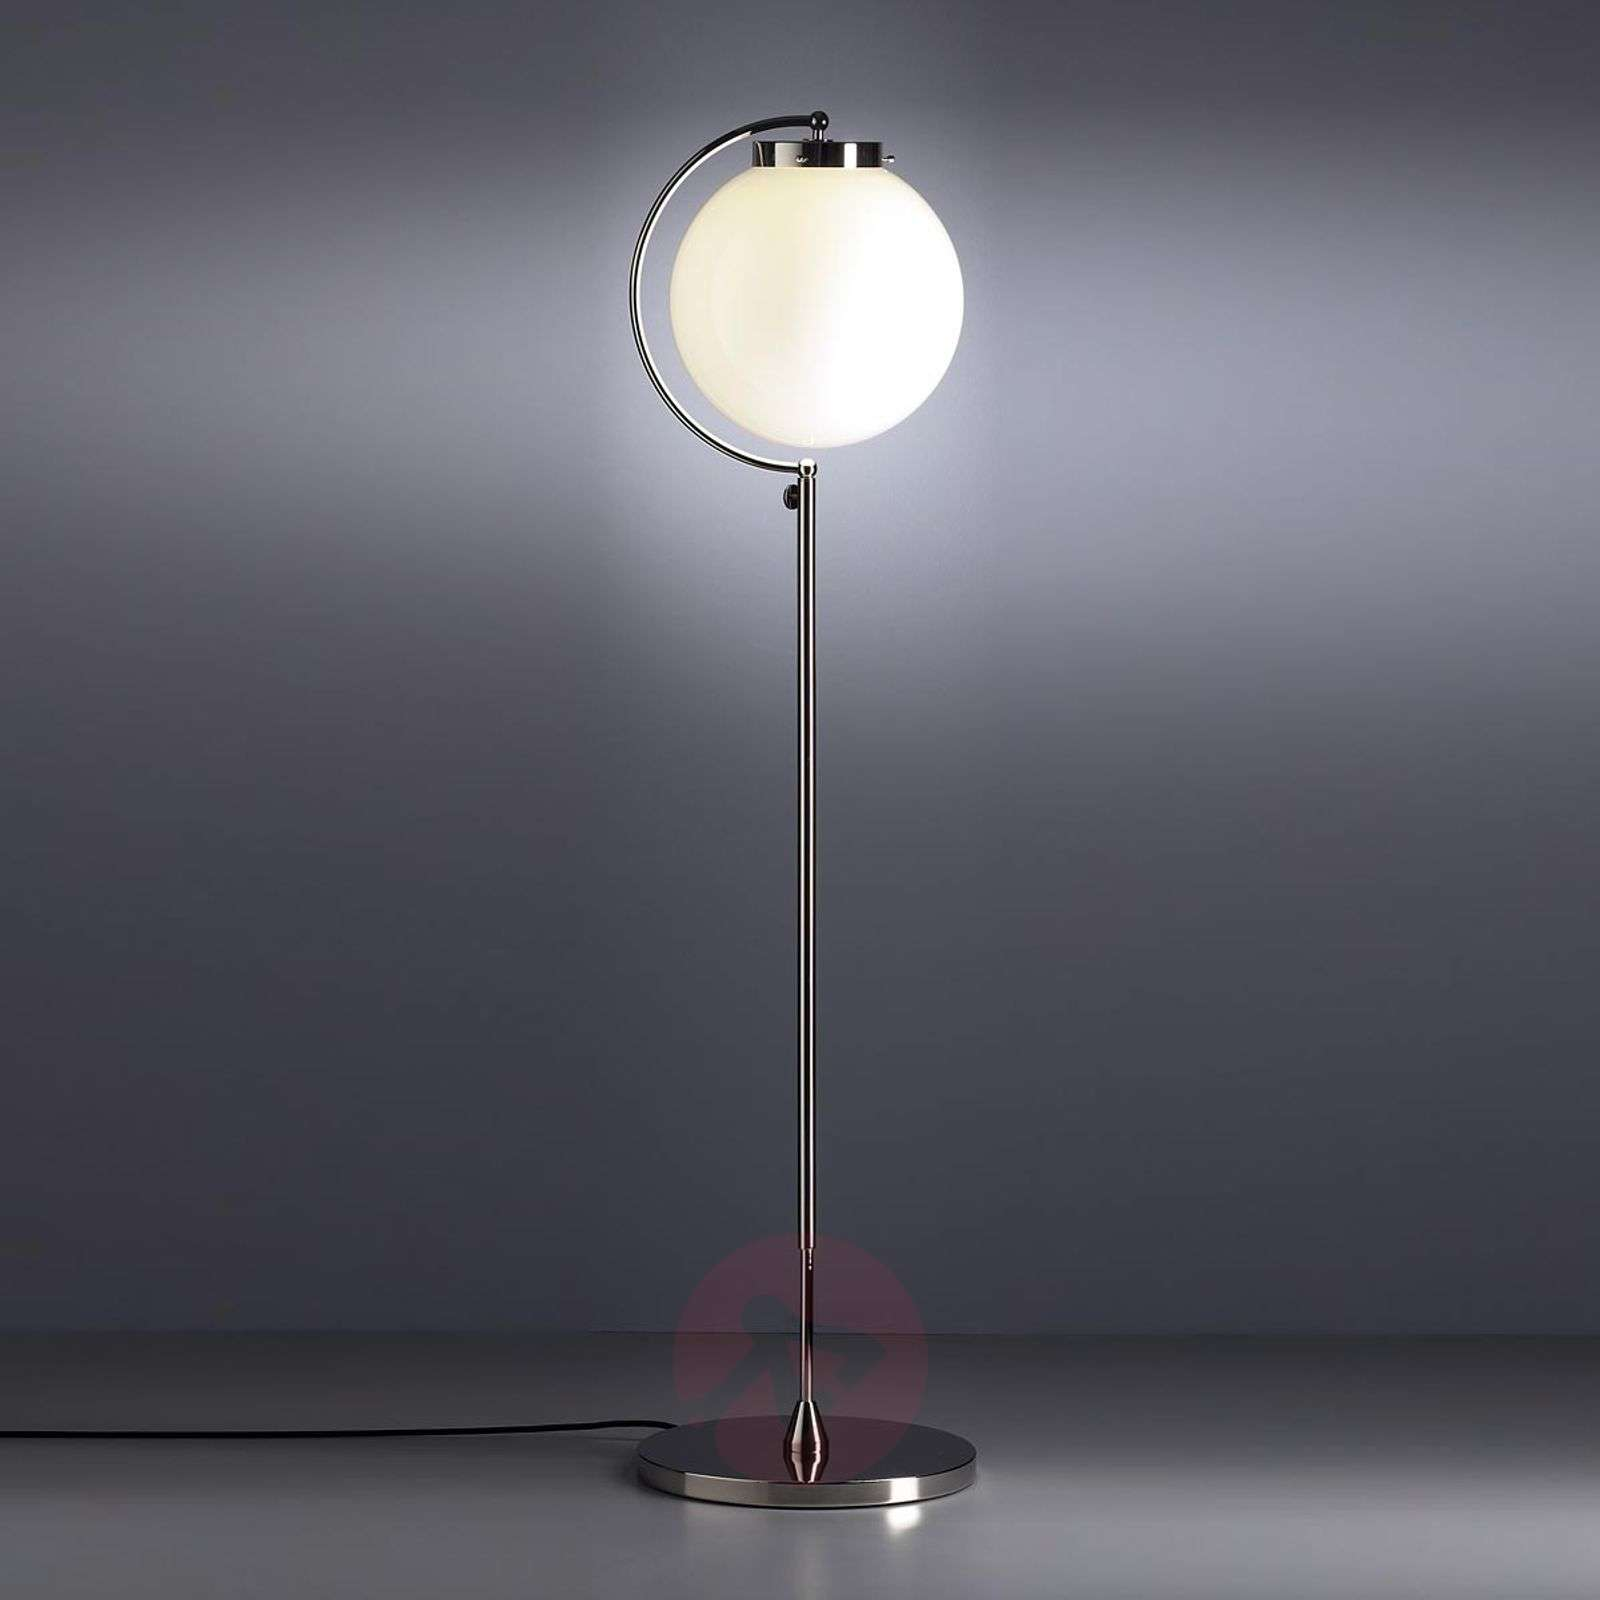 Bauhaus floor lamp by prof richard dcker lights bauhaus floor lamp by prof richard dcker 9030014 01 aloadofball Image collections